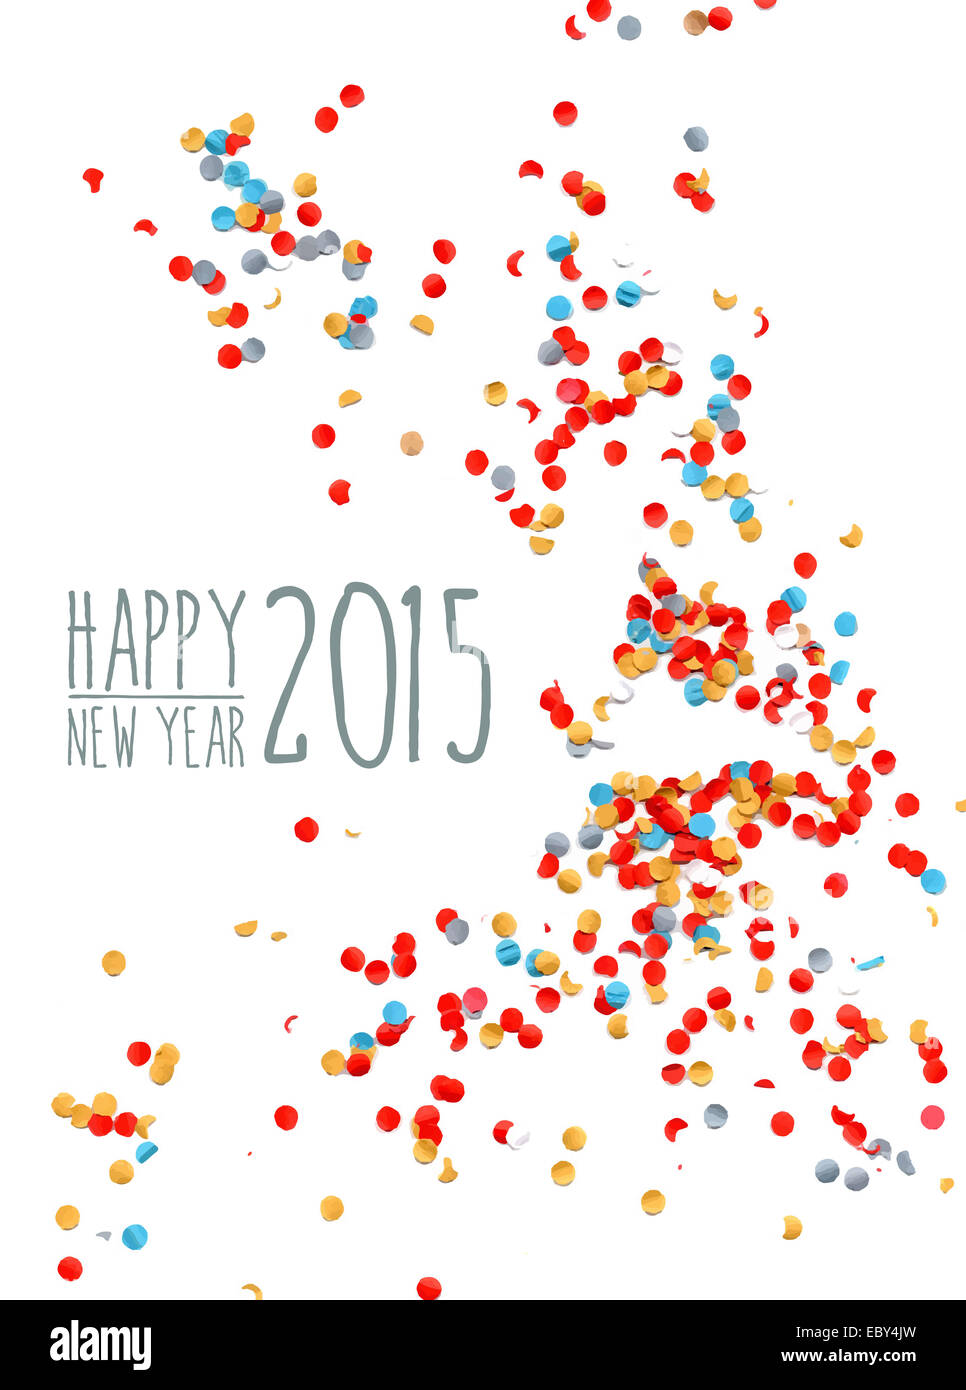 Happy new year 2015 celebration with colorful confetti paper stock happy new year 2015 celebration with colorful confetti paper background ideal for greeting card print poster and signboard ep m4hsunfo